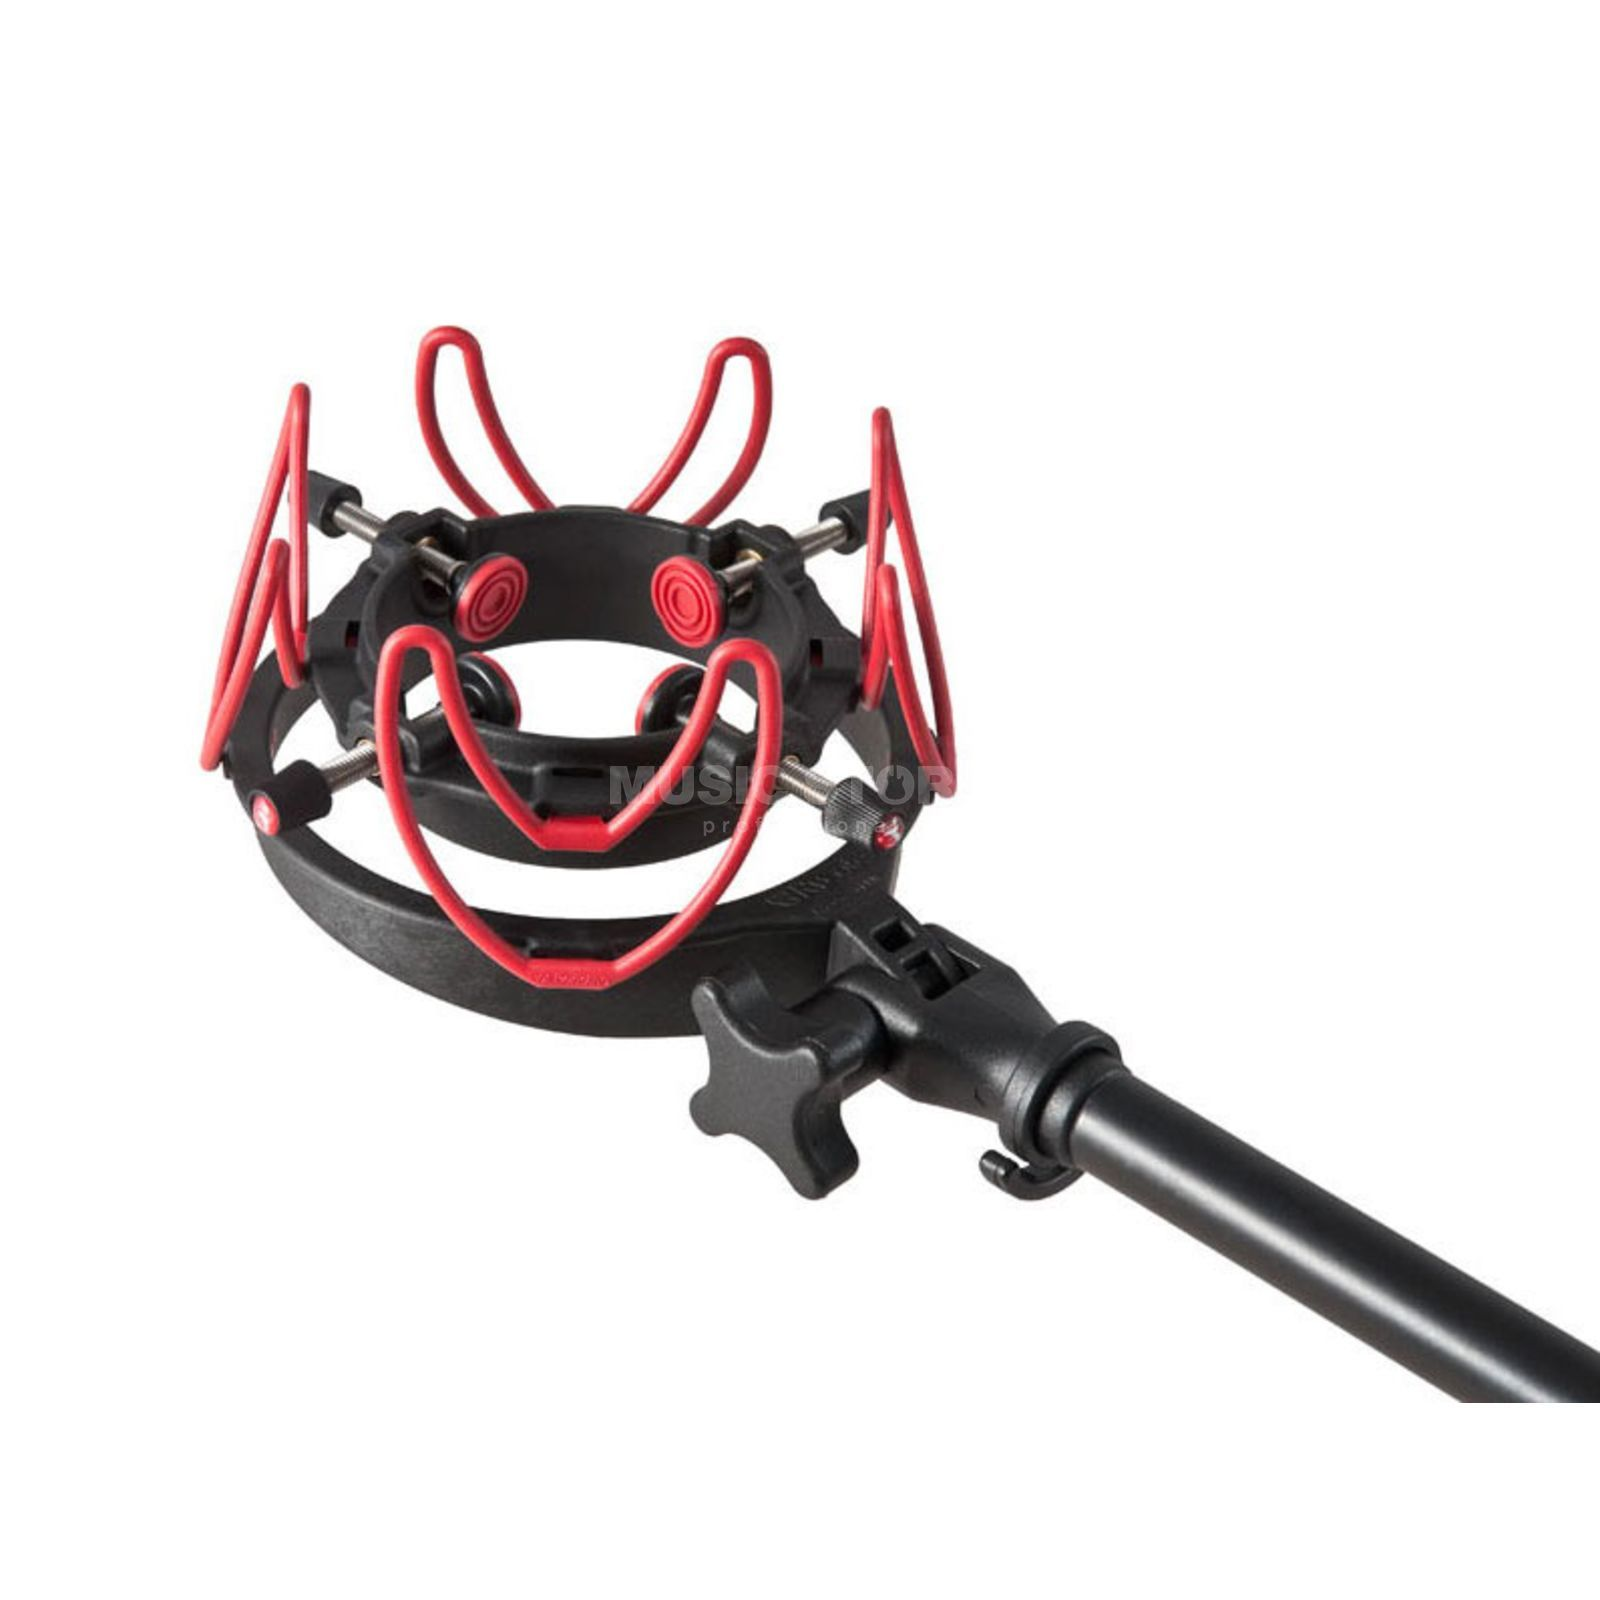 Rycote InVision Studio USM-VB Shock Mount to 900g/55 to 68 mm Produktbillede